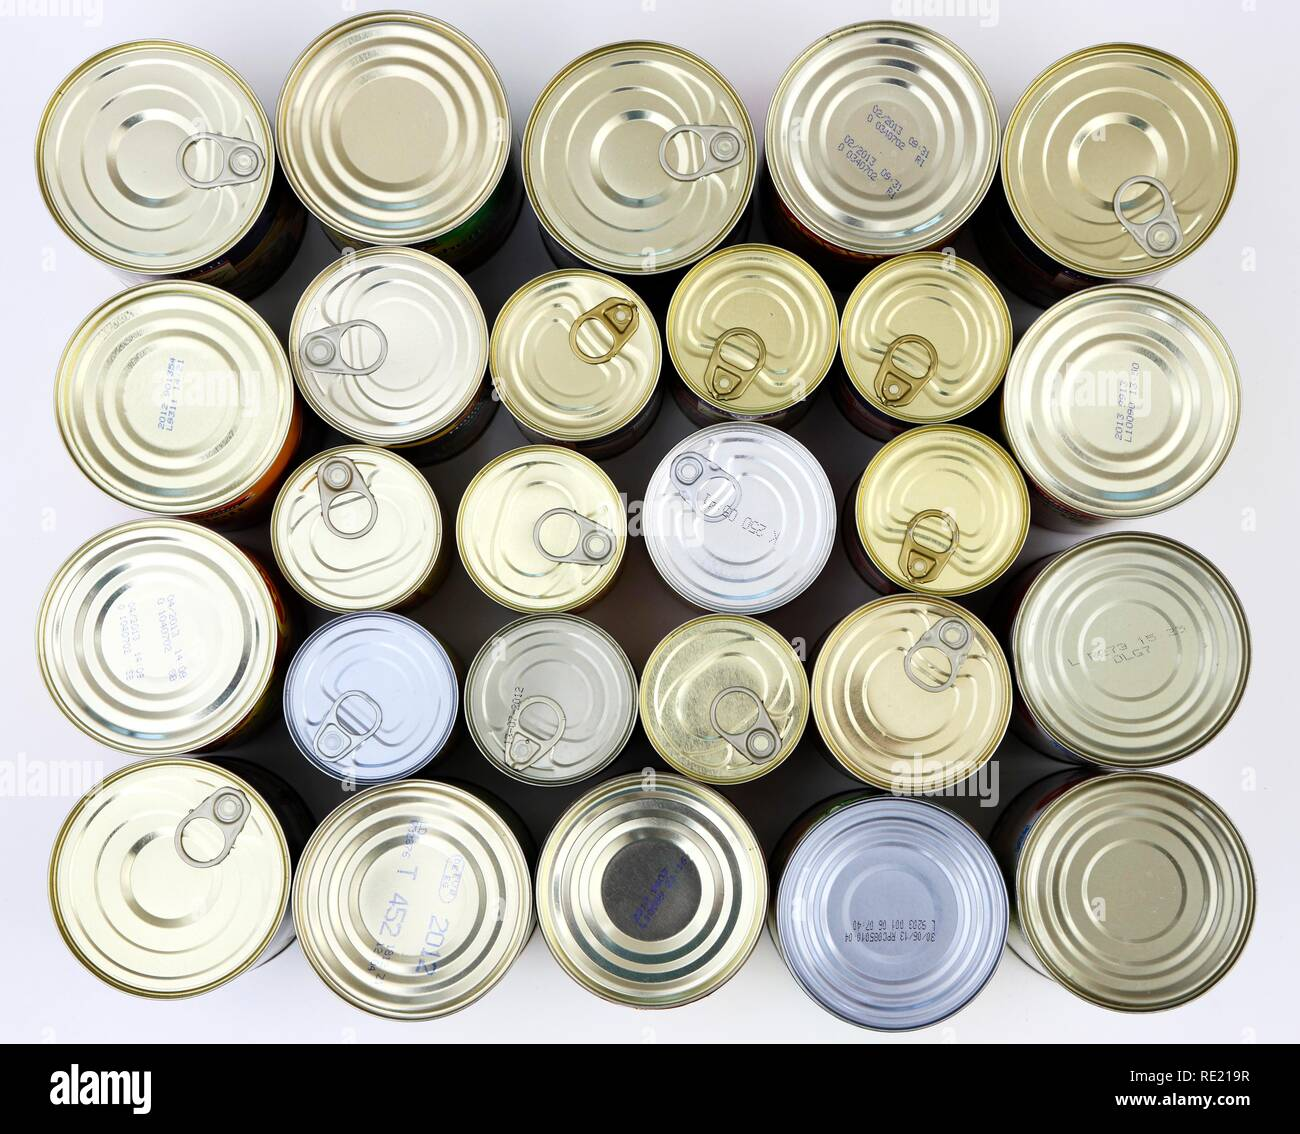 Cans of tinned food - Stock Image